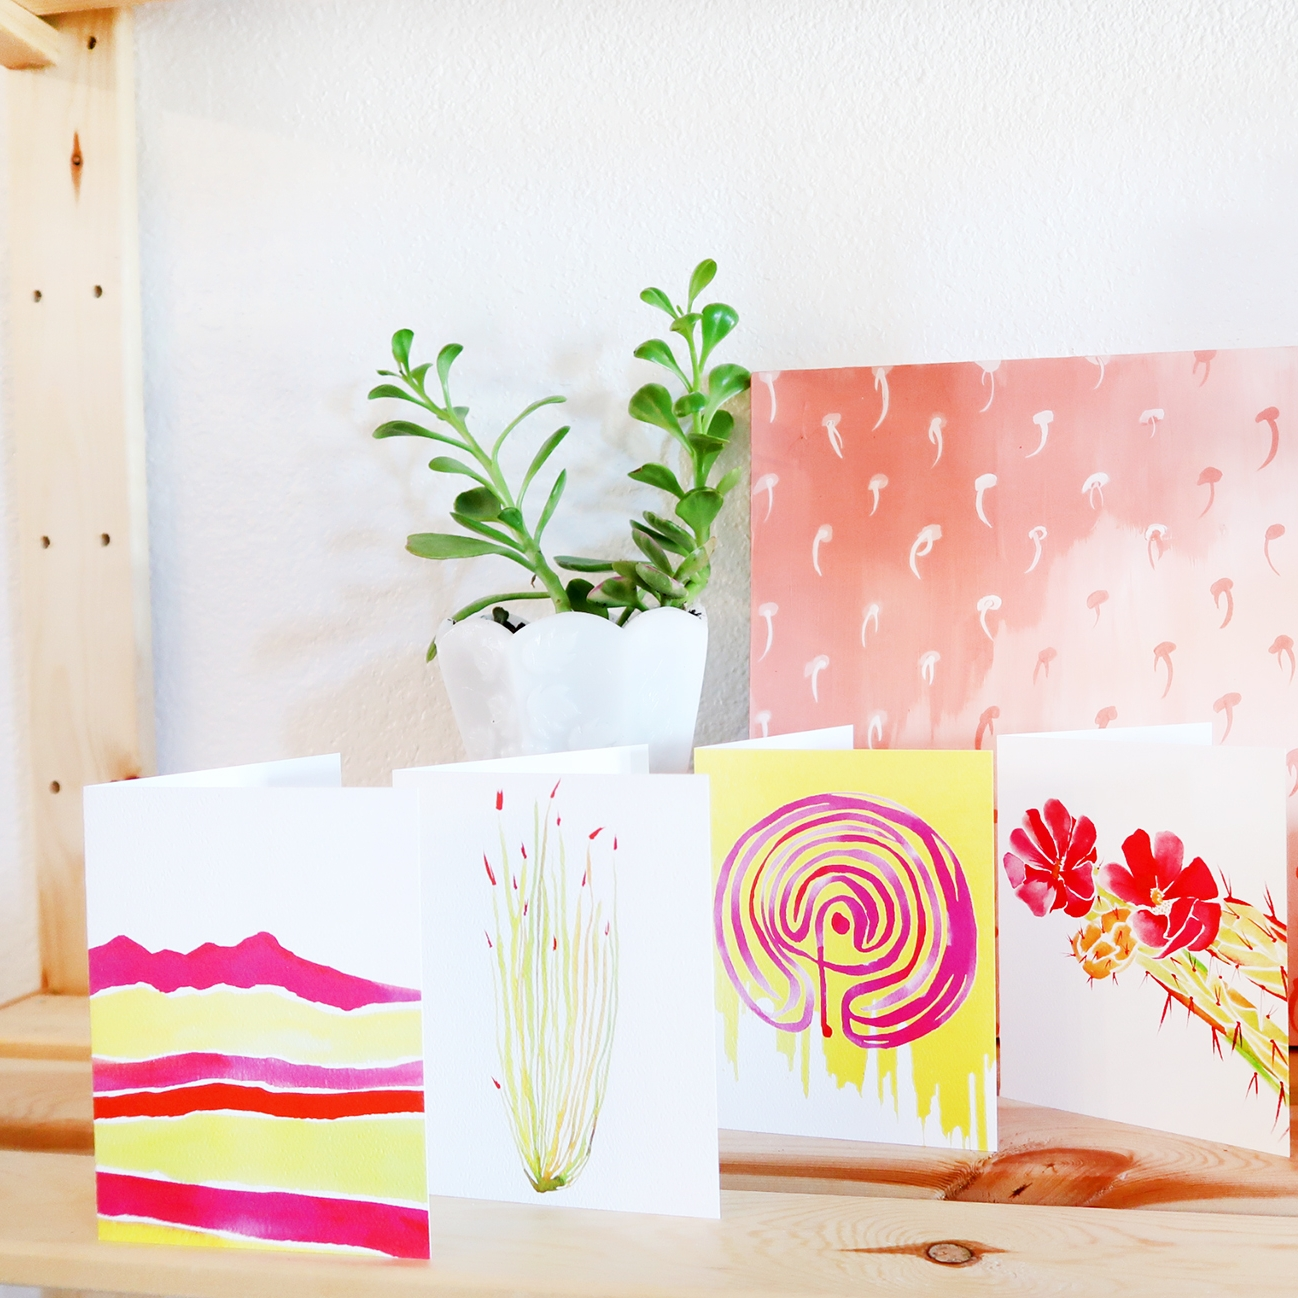 Miraval Resort   Set of 5 Cards inspired by the property + sold in the on-site resort shop